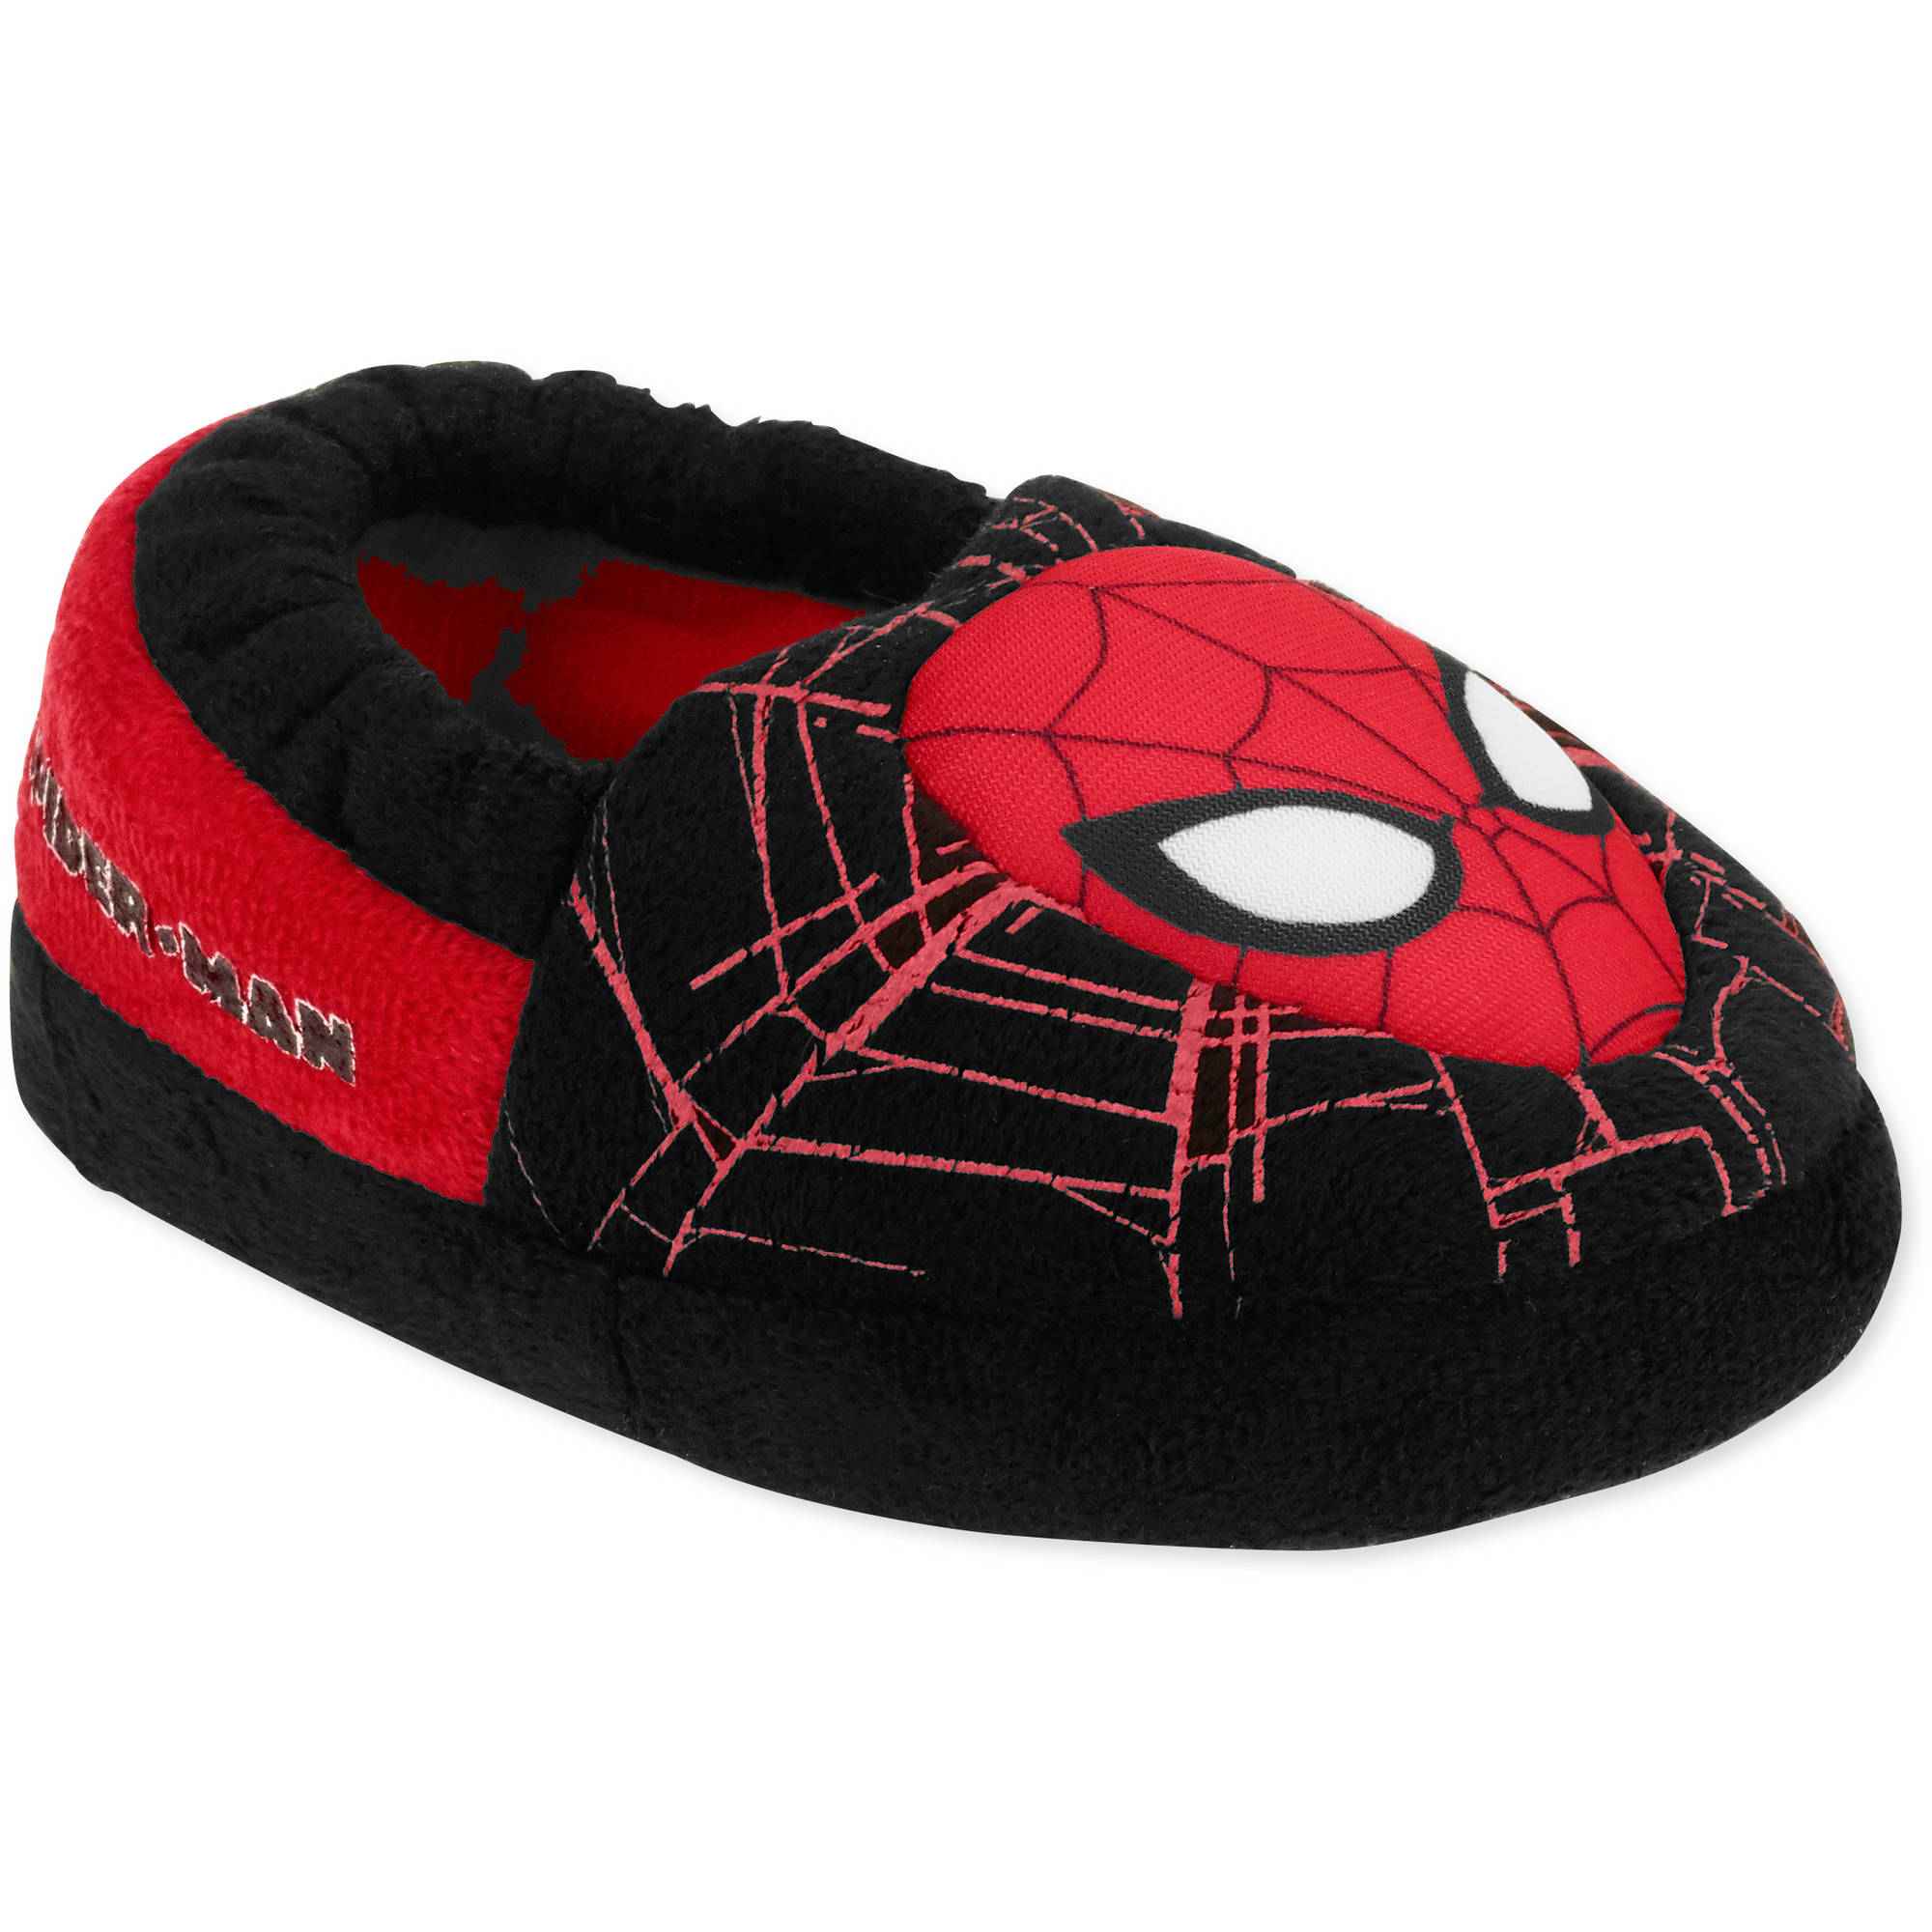 Boy's Toddler Slipper